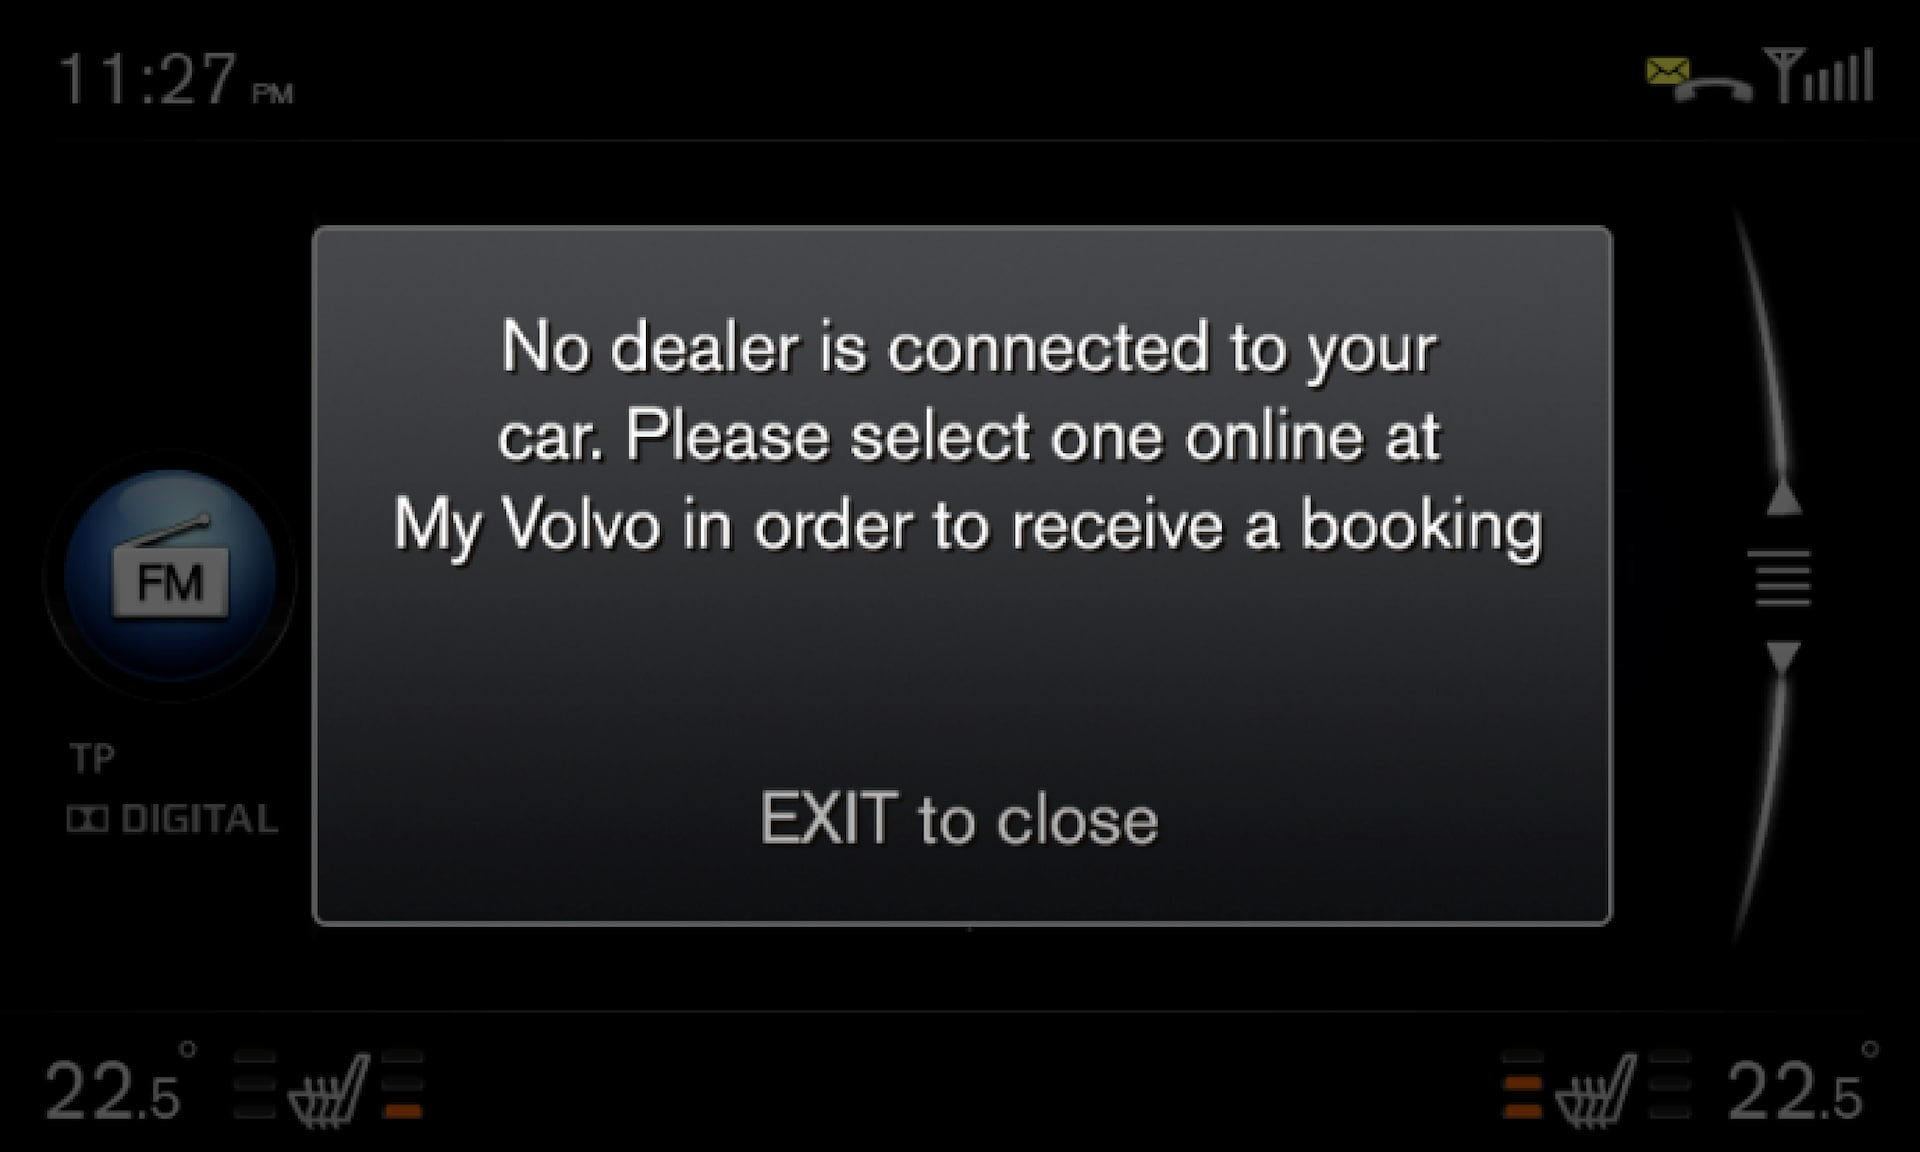 P3/P4 - Support site - Error message - Select a dealer online at My Volvo to receive a booking